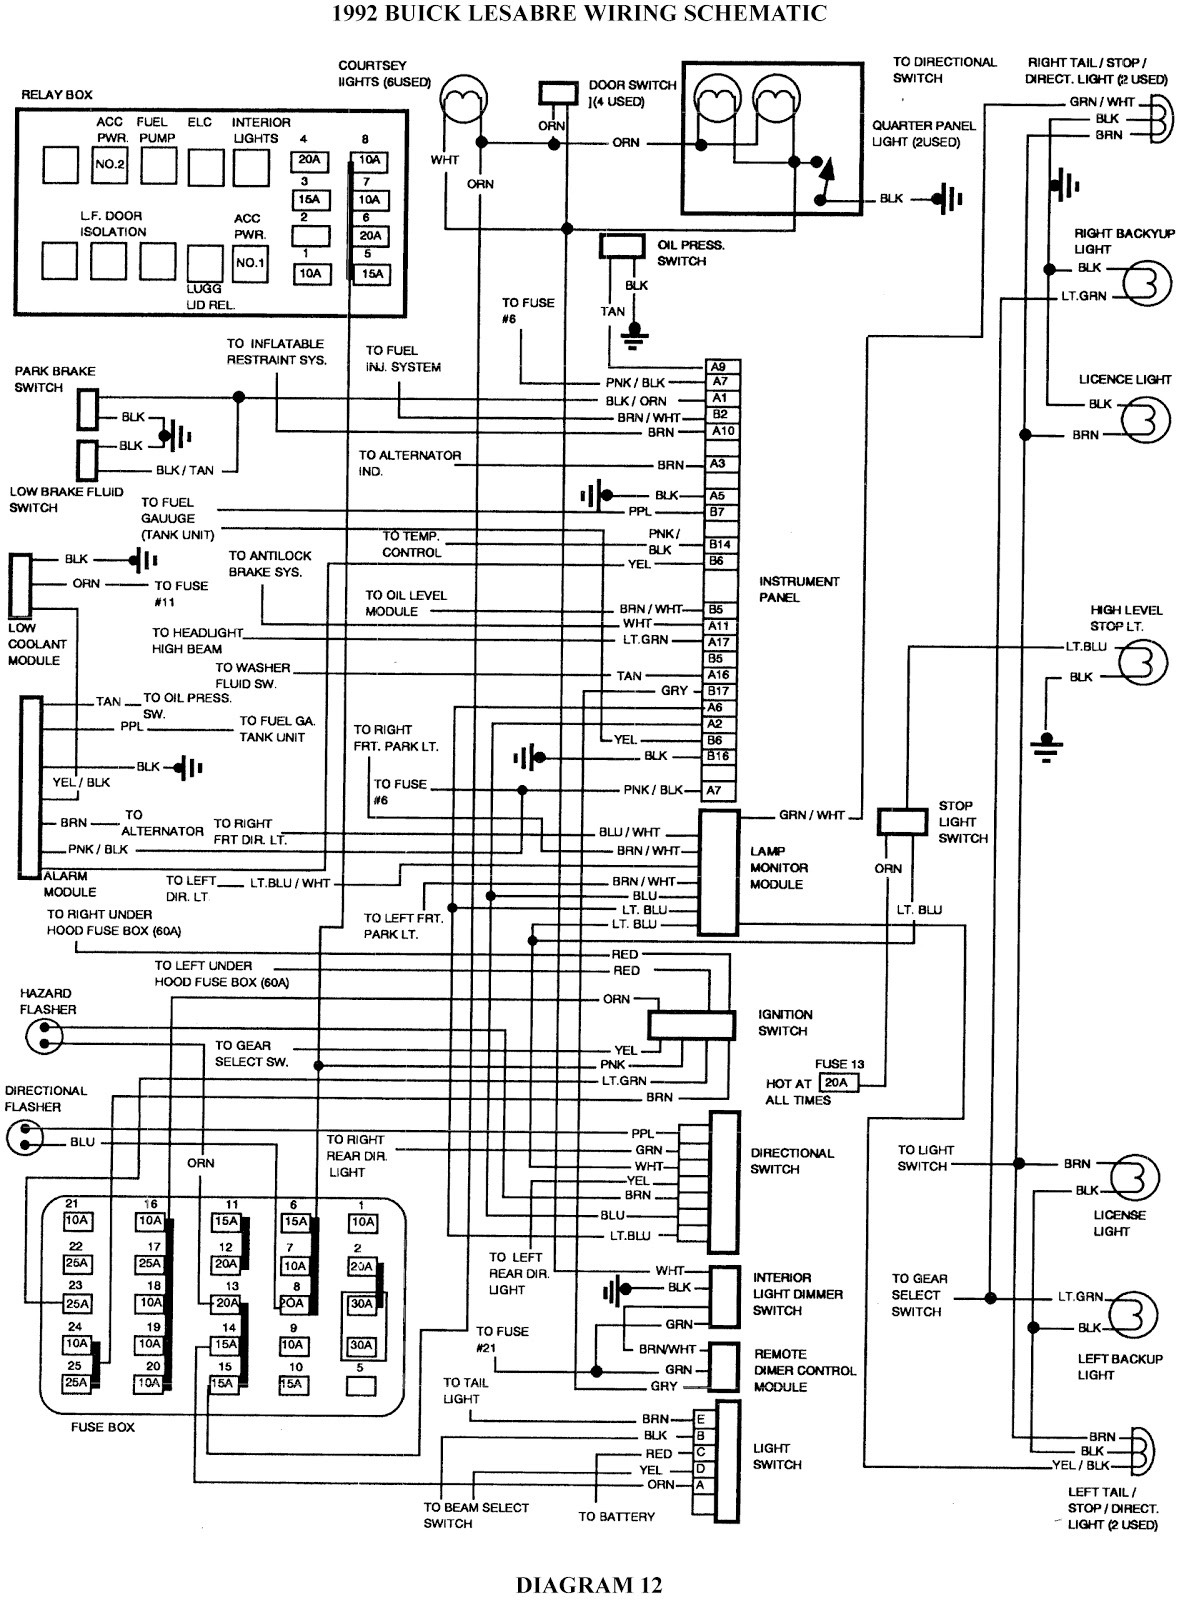 fire pump control panel wiring diagram schematic for 12 volt alternator 1992 buick lesabre diagrams | solutions